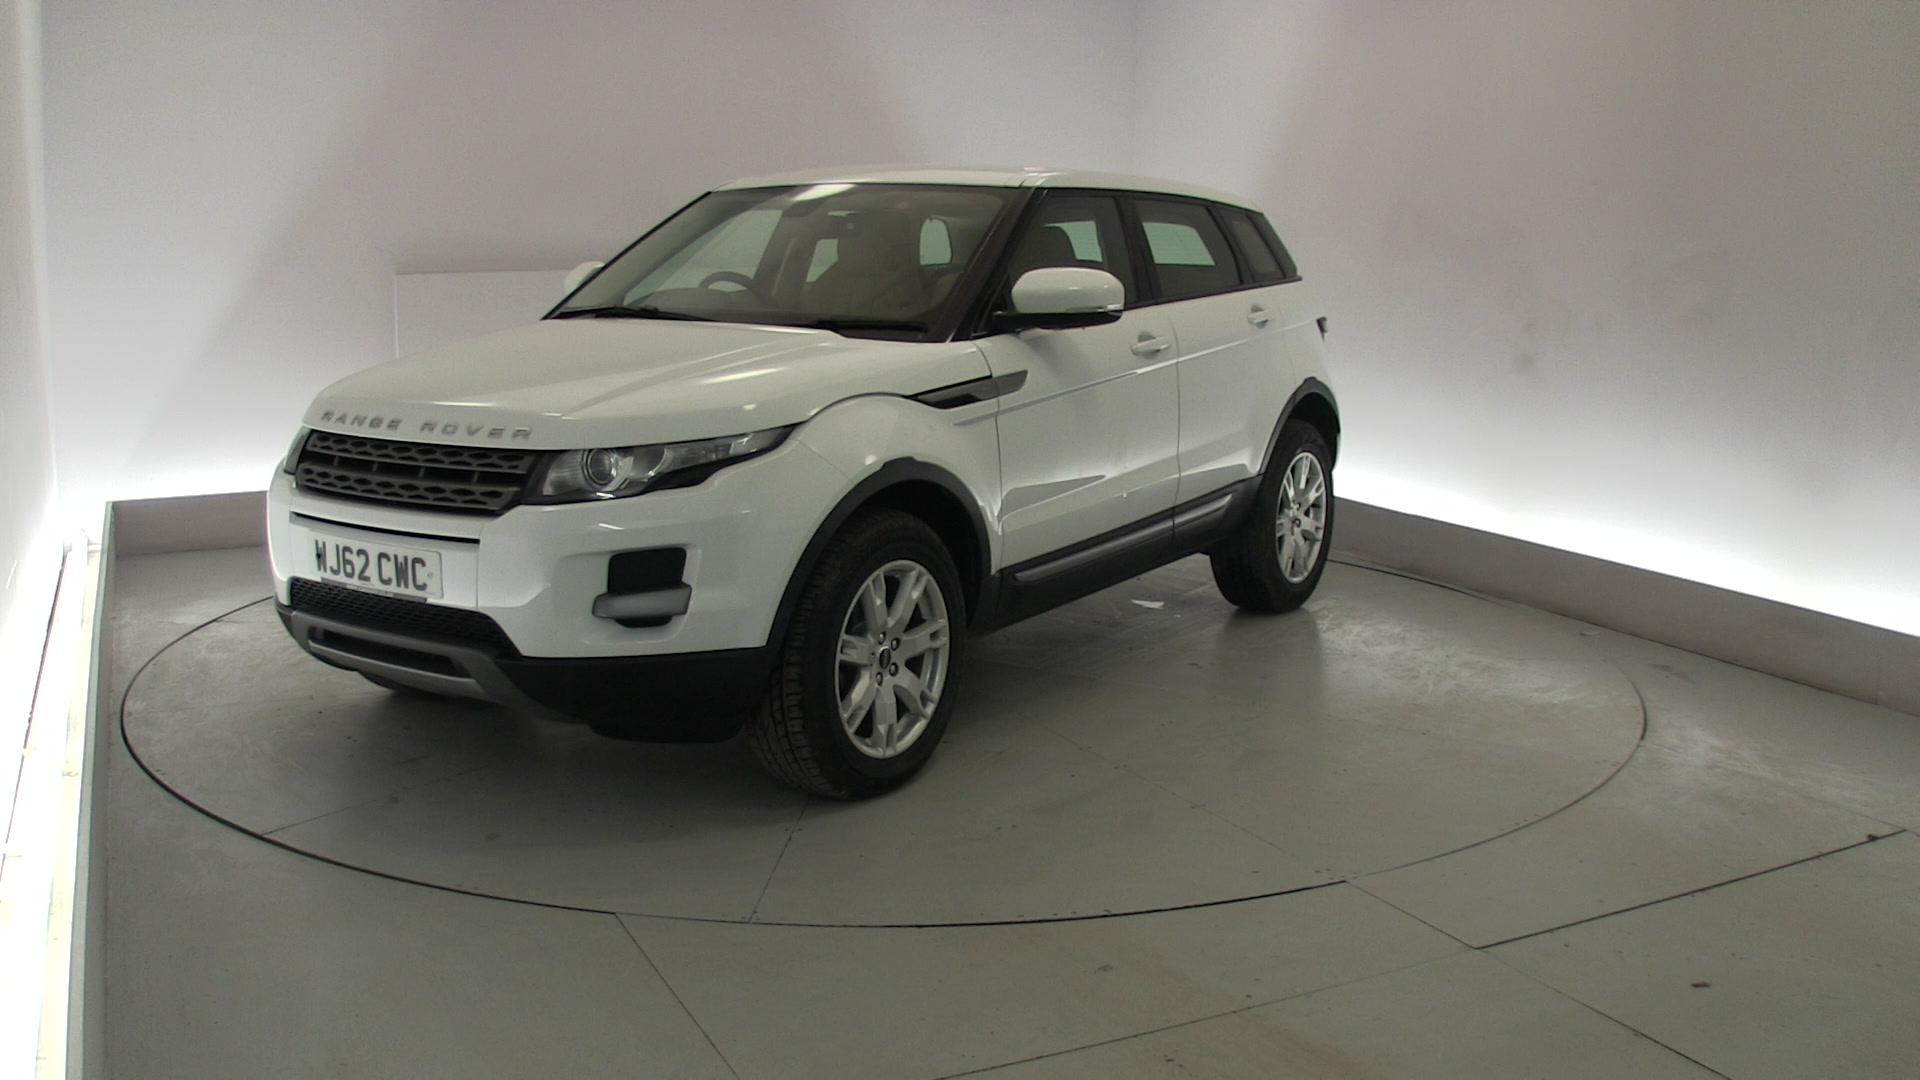 used land rover range rover evoque 2 2 sd4 pure 5dr white wj62cwc doncaster. Black Bedroom Furniture Sets. Home Design Ideas